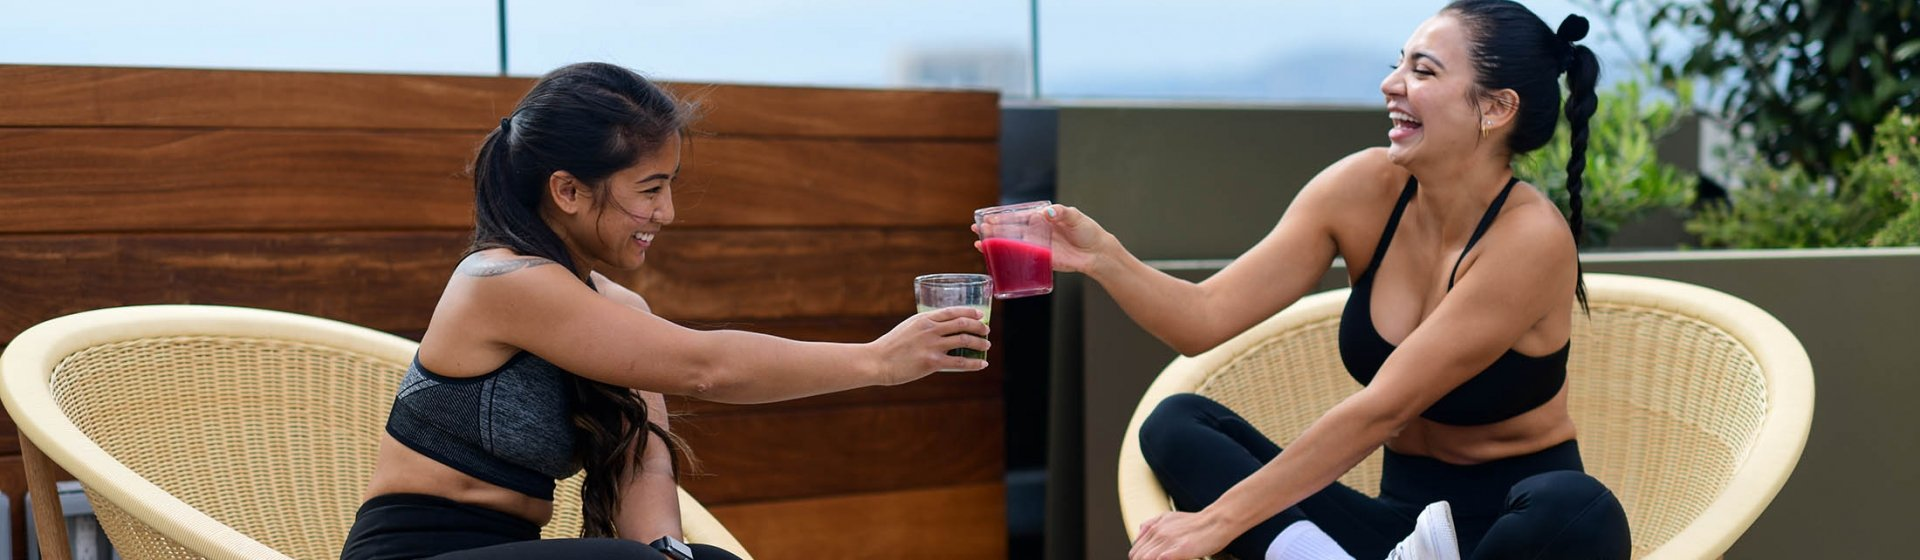 Women at the fitness center cheers drinks white relaxing.